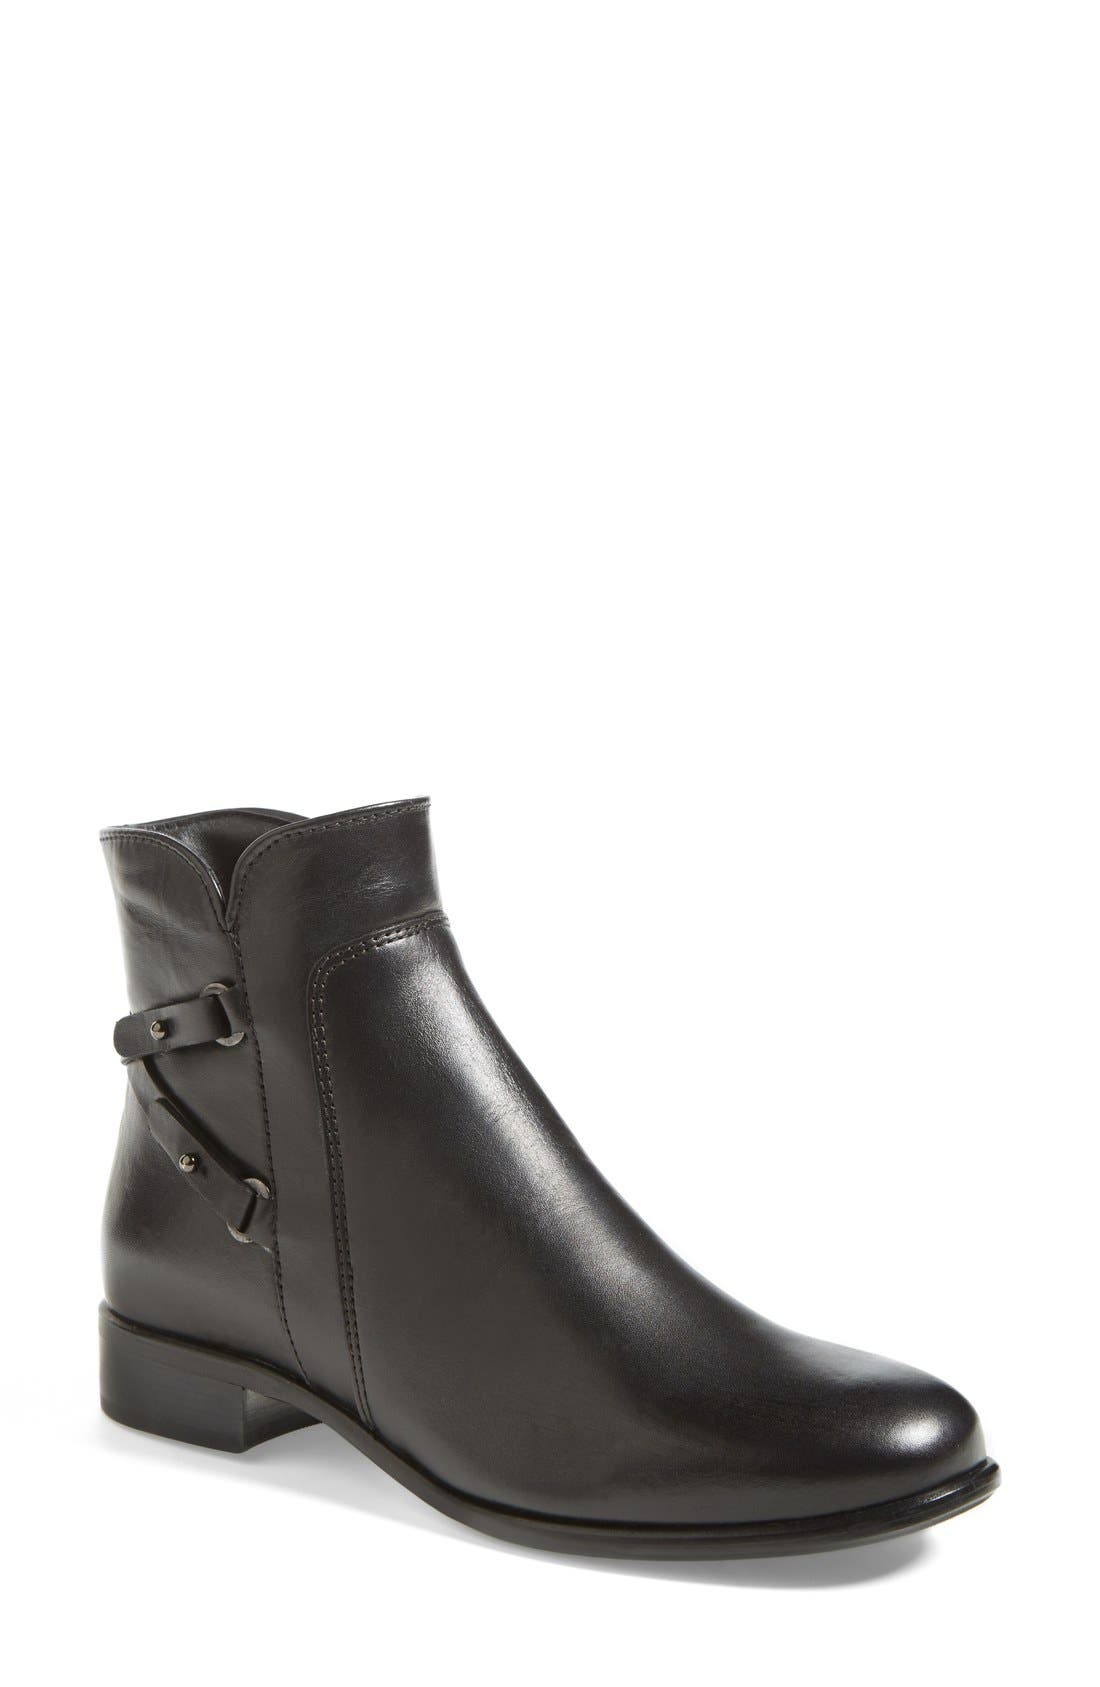 'Sharon' Waterproof Bootie,                             Main thumbnail 1, color,                             Black Leather